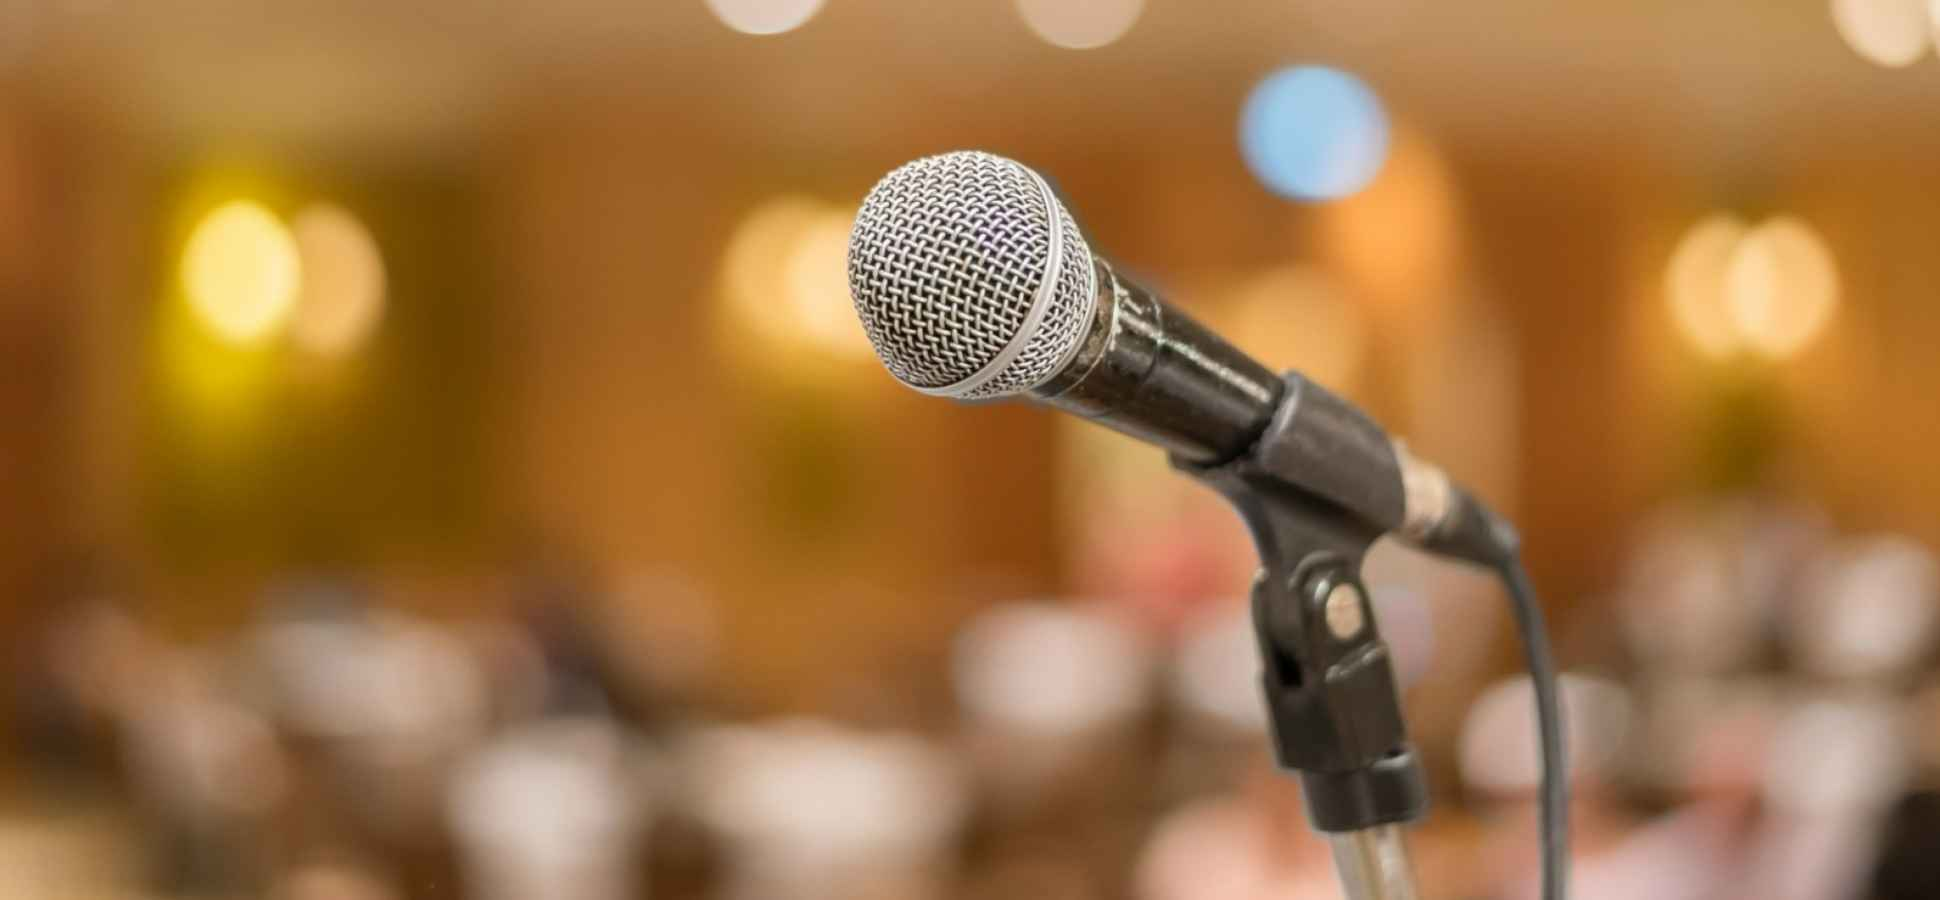 7 Solid Tips on How to Be the Best Speaker in the Room